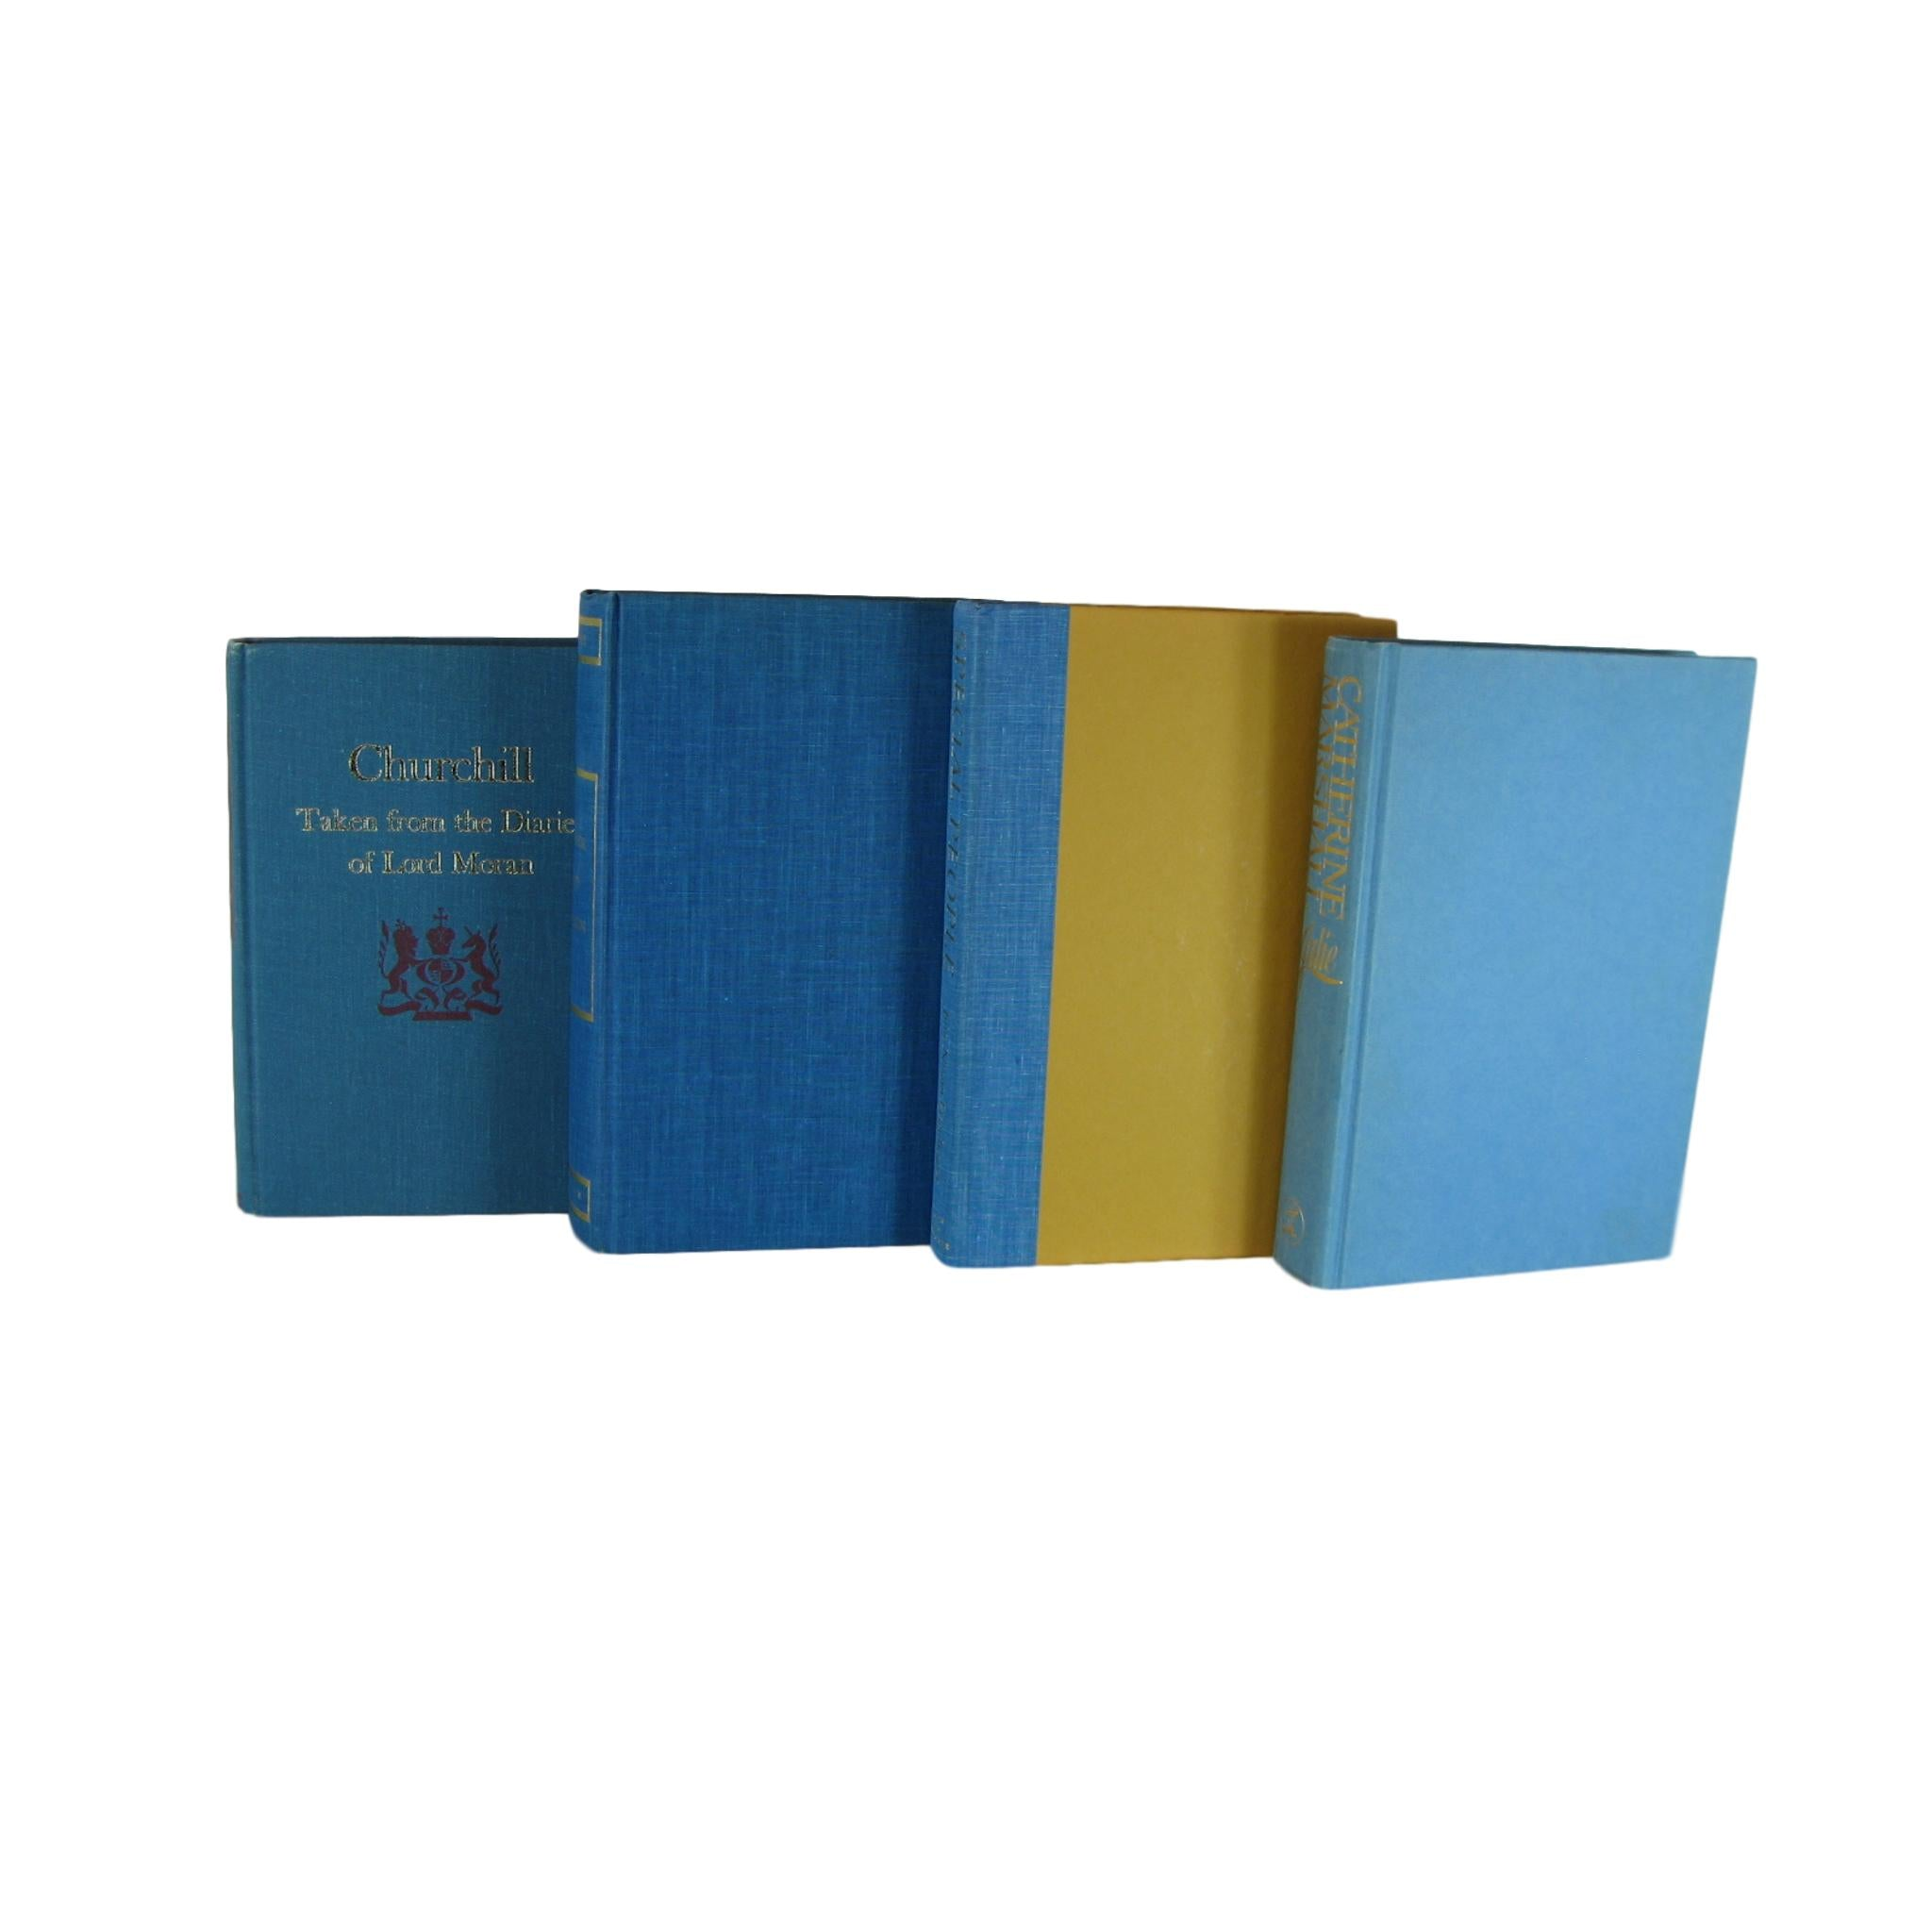 Vintage Blue  Books for Decoration,  S/4 - Decades of Vintage